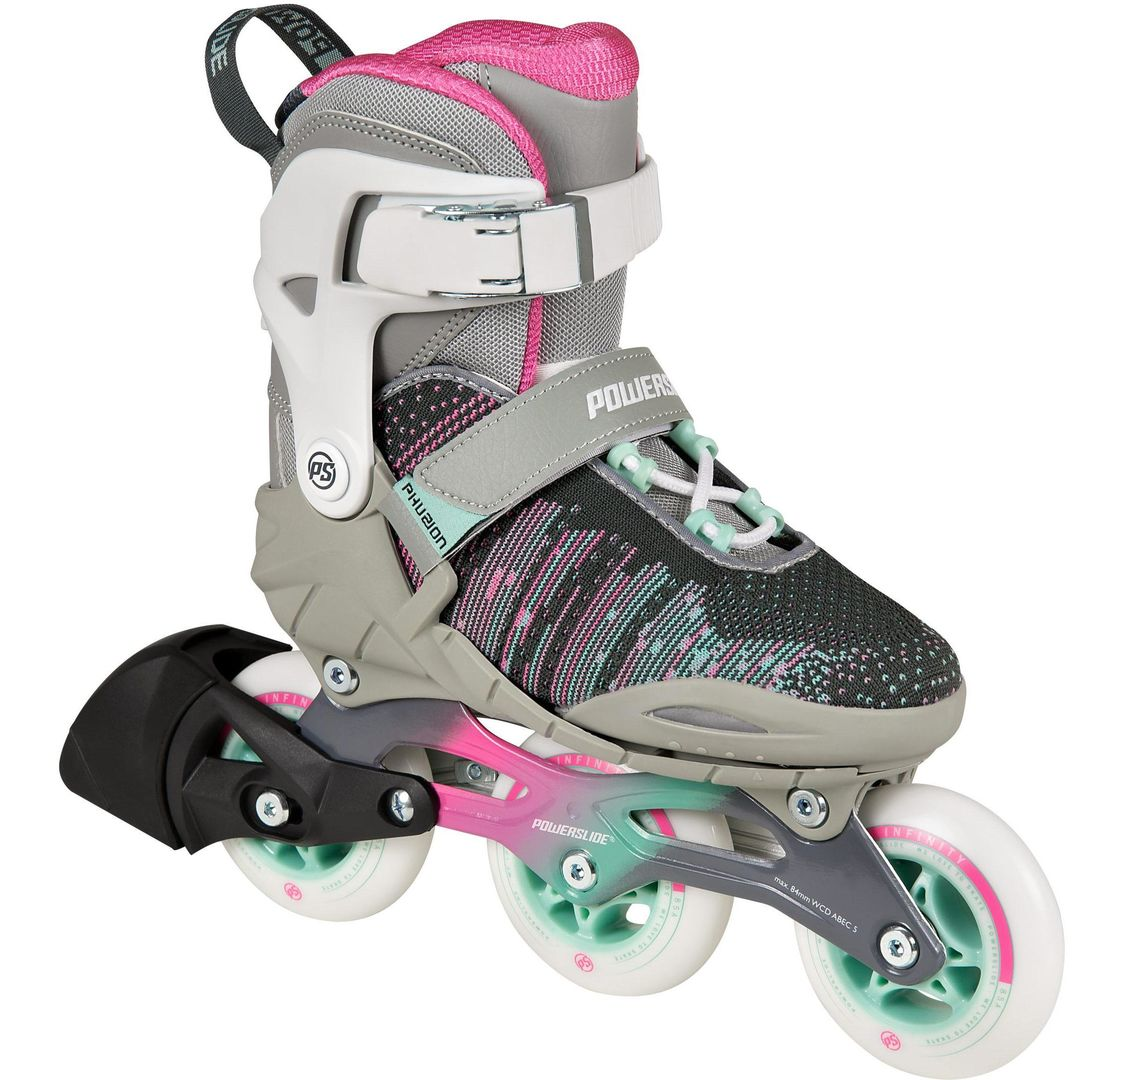 Buy Powerslide Phuzion Galaxy Girls Inline Skates, Softboot, 37-40 in Dubai at cheap price